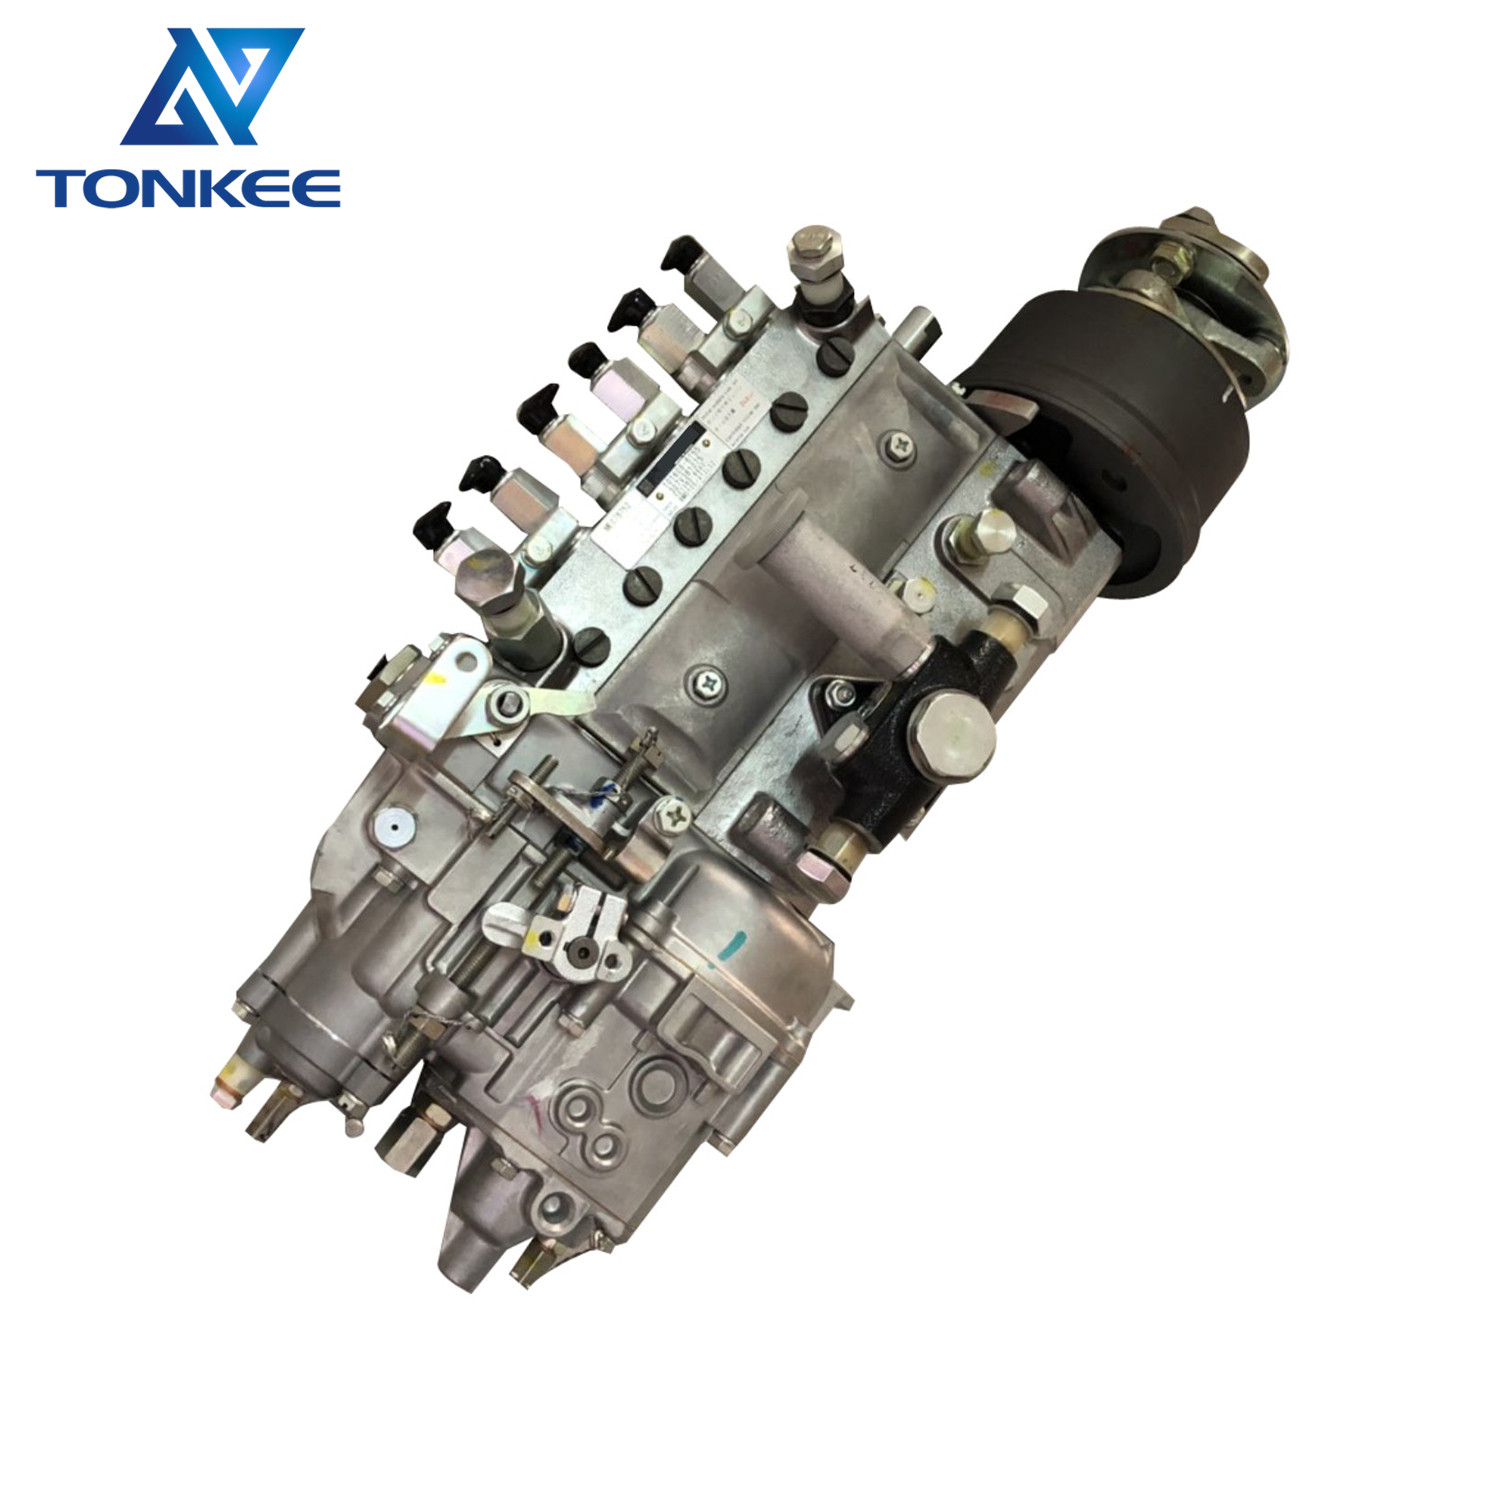 ME078752 101608-6155 101060-6640 105411-2073 fuel injection pump mechanical control SK330-6 6D16T 6D16 Diesel pump